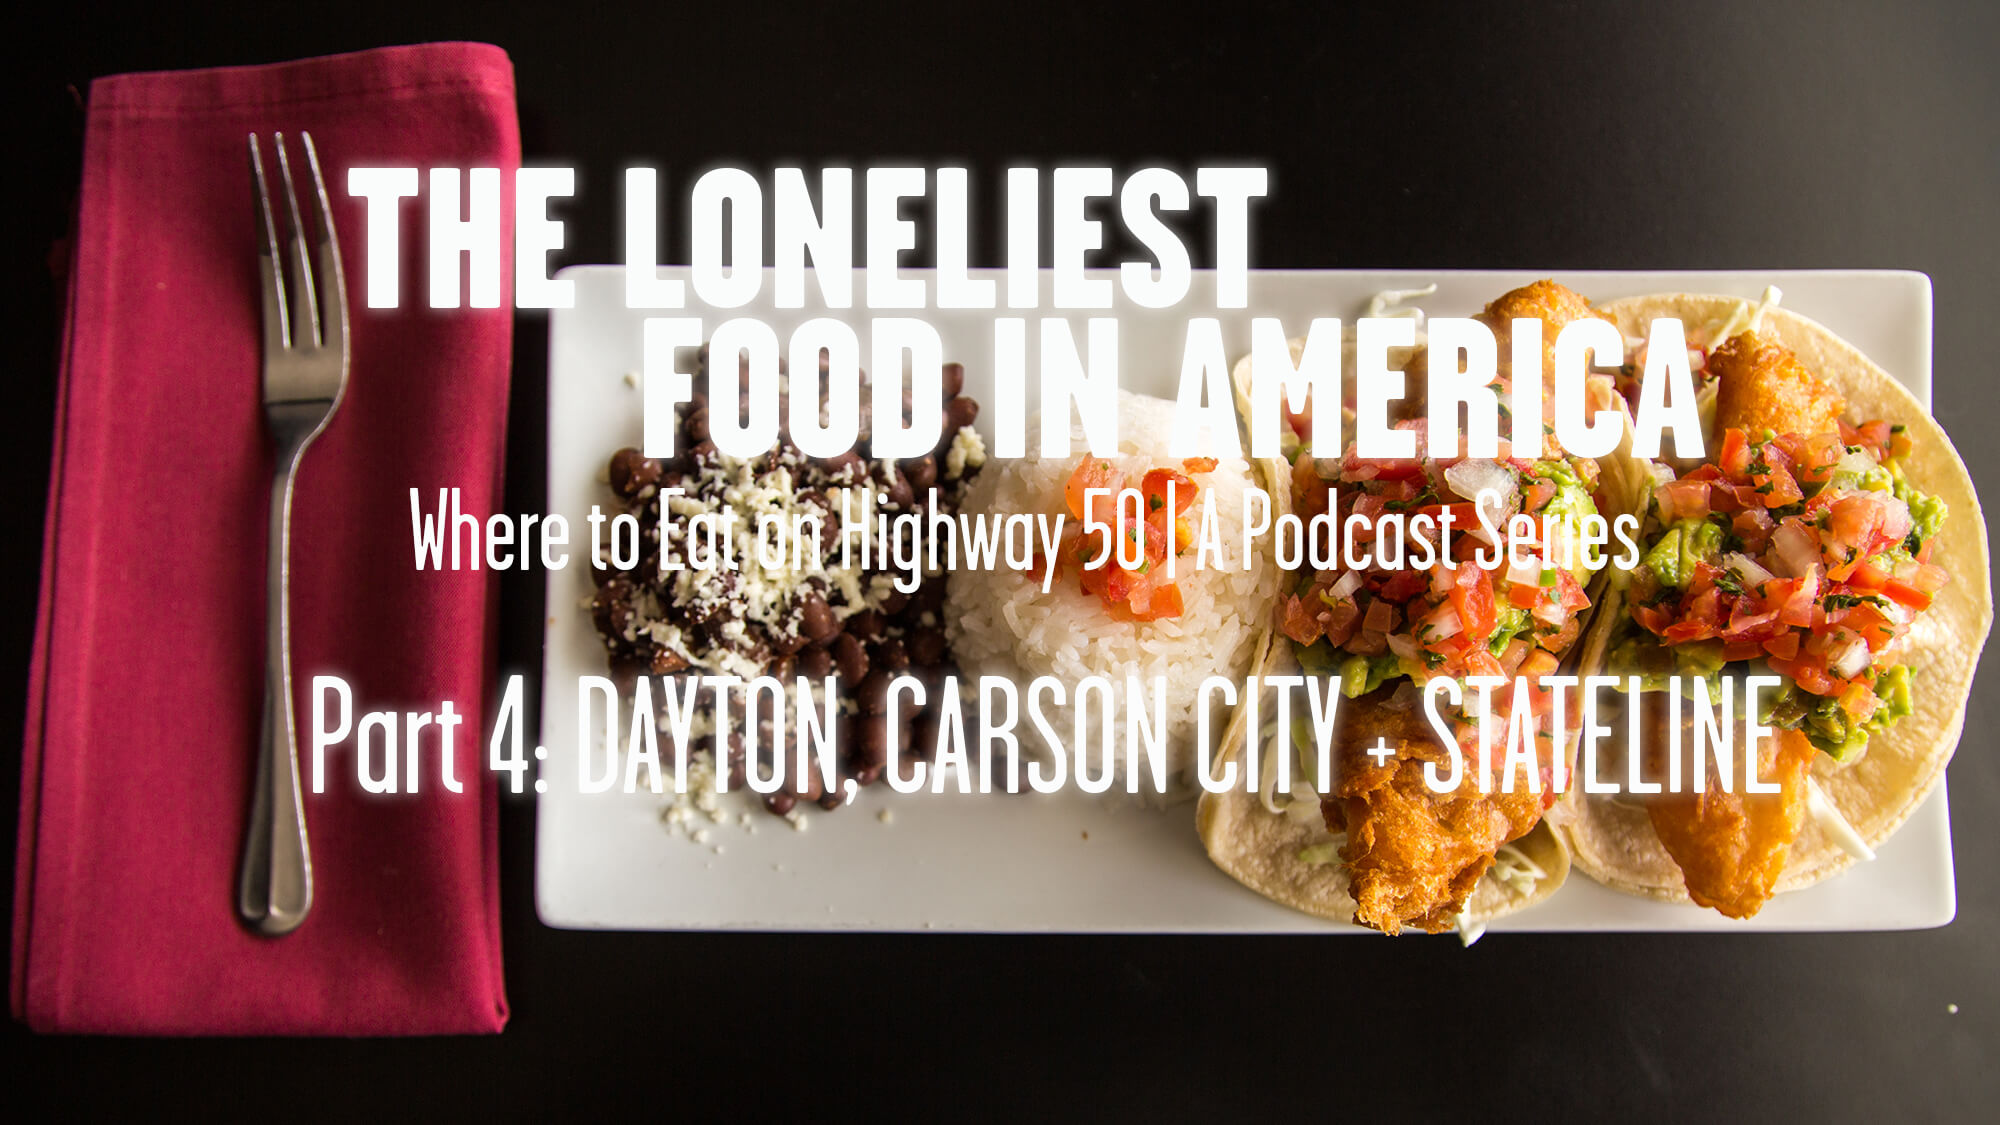 THE LONELIEST FOOD IN AMERICA - Part 4: